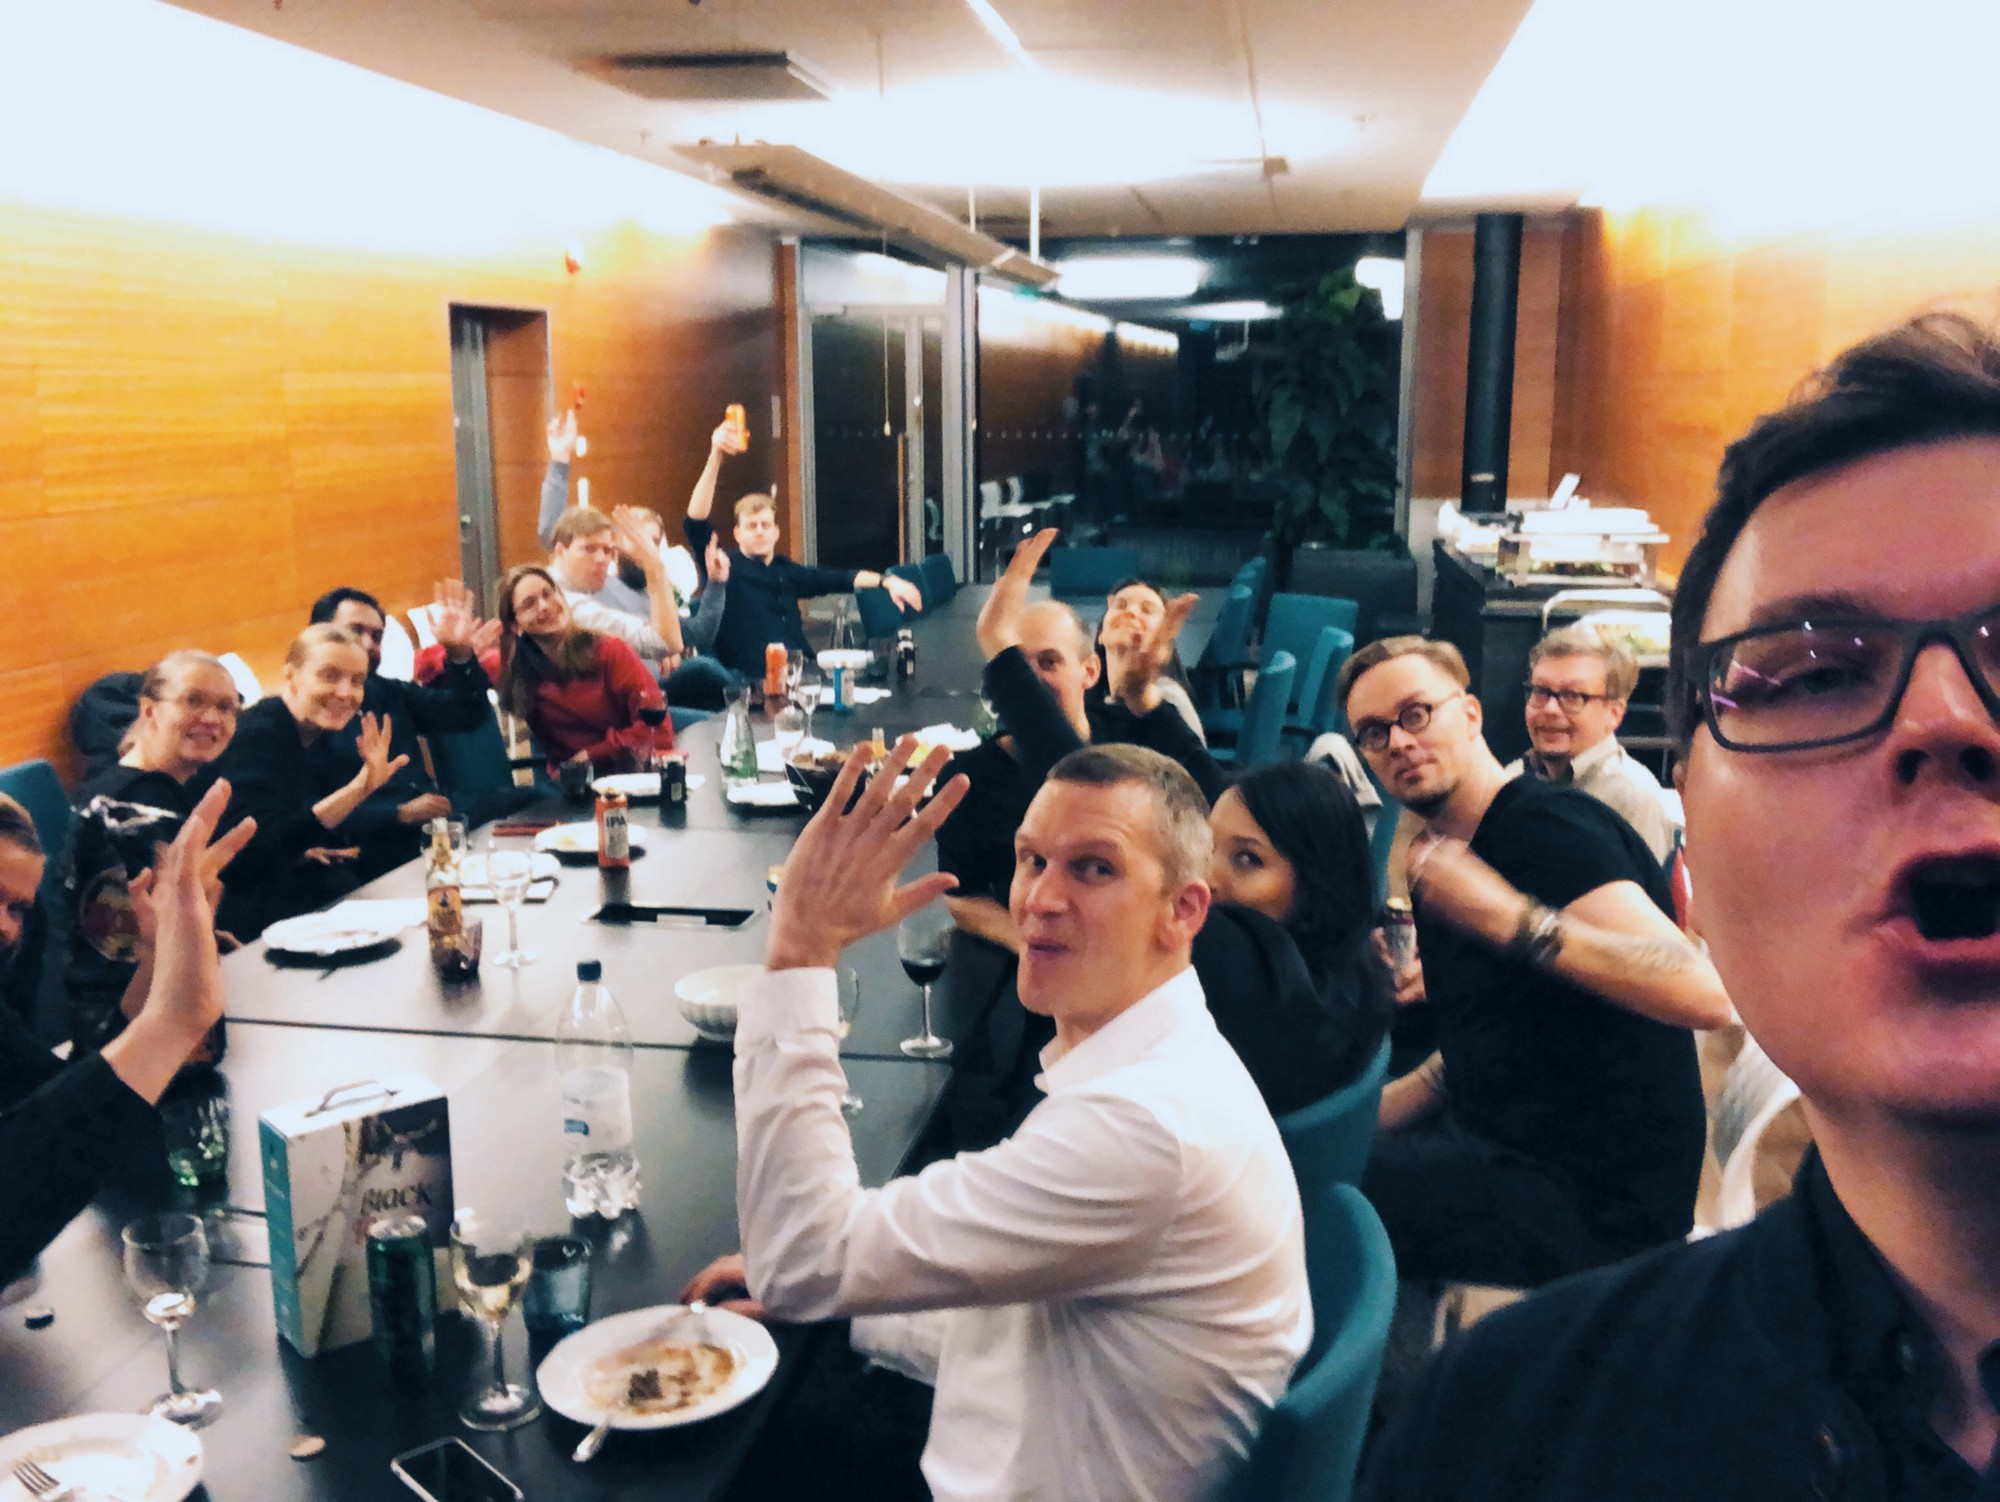 Weeknote #593: Xmas party time